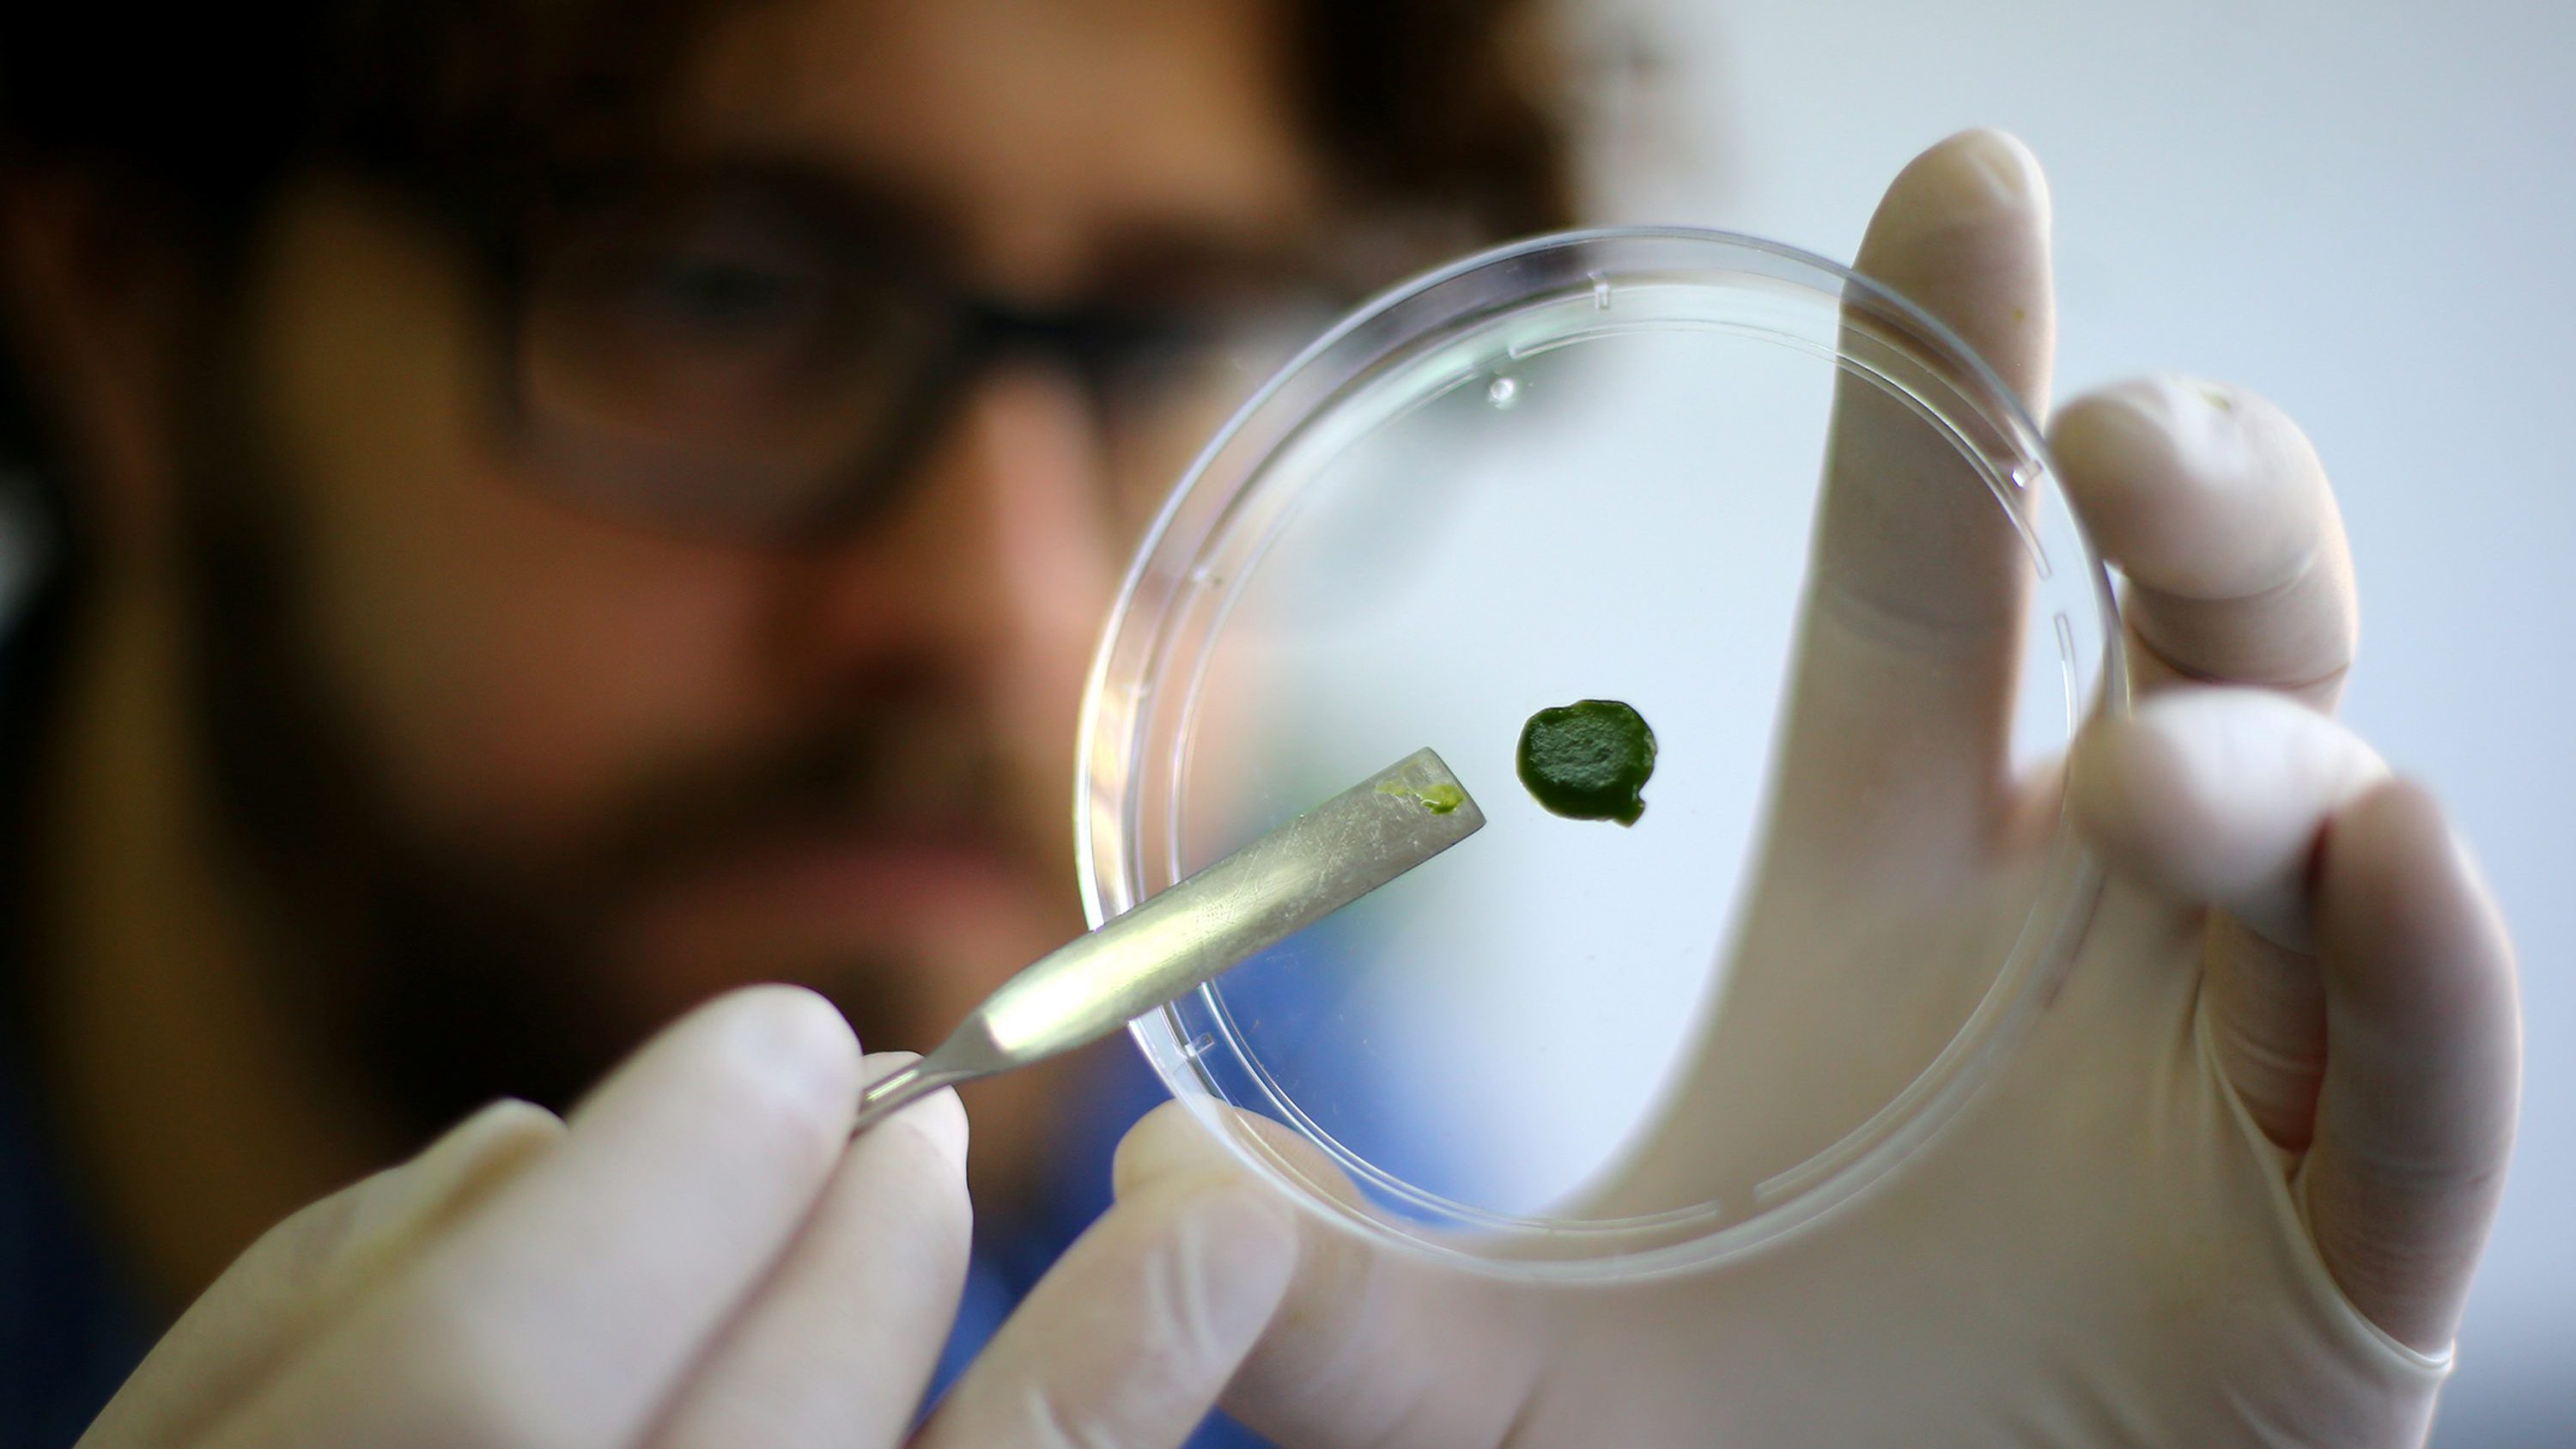 University professor Tomas Egana shows a sample of artificial skin impregnated and coloured with microalgae to allow artificial skin produce oxygen and breathe, in Santiago, Chile, November 24, 2016. Picture taken November 24, 2016.